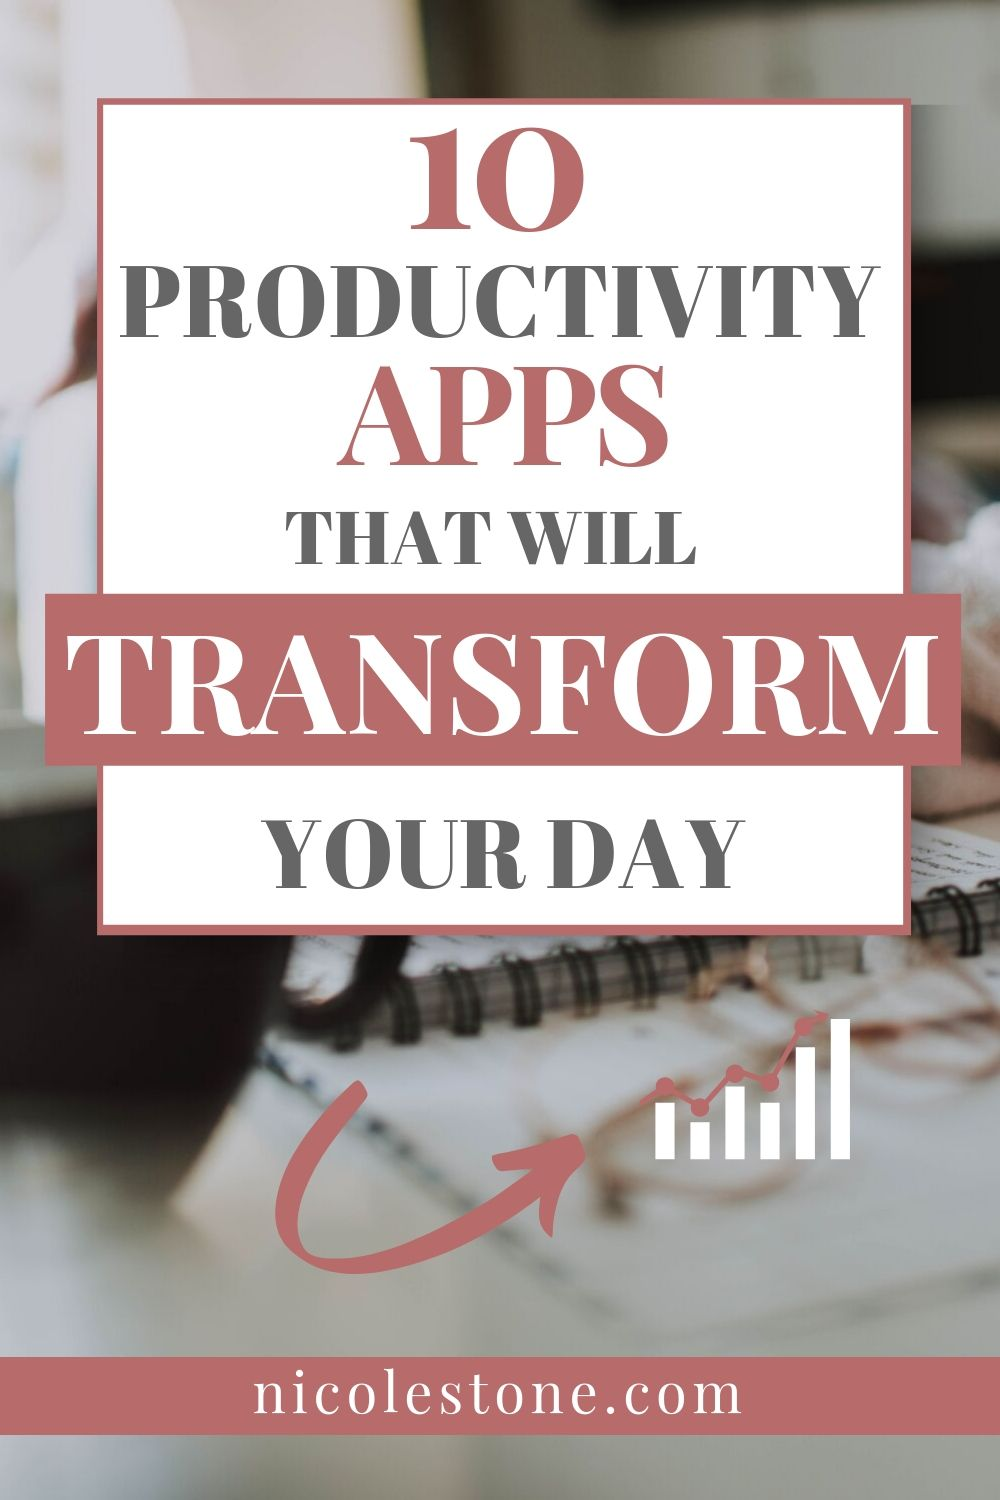 10 Productivity Apps That Will Transform Your Day! The complete list of apps that will improve your daily productivity. #productivity #timemanagement #personaldevelopment #productive